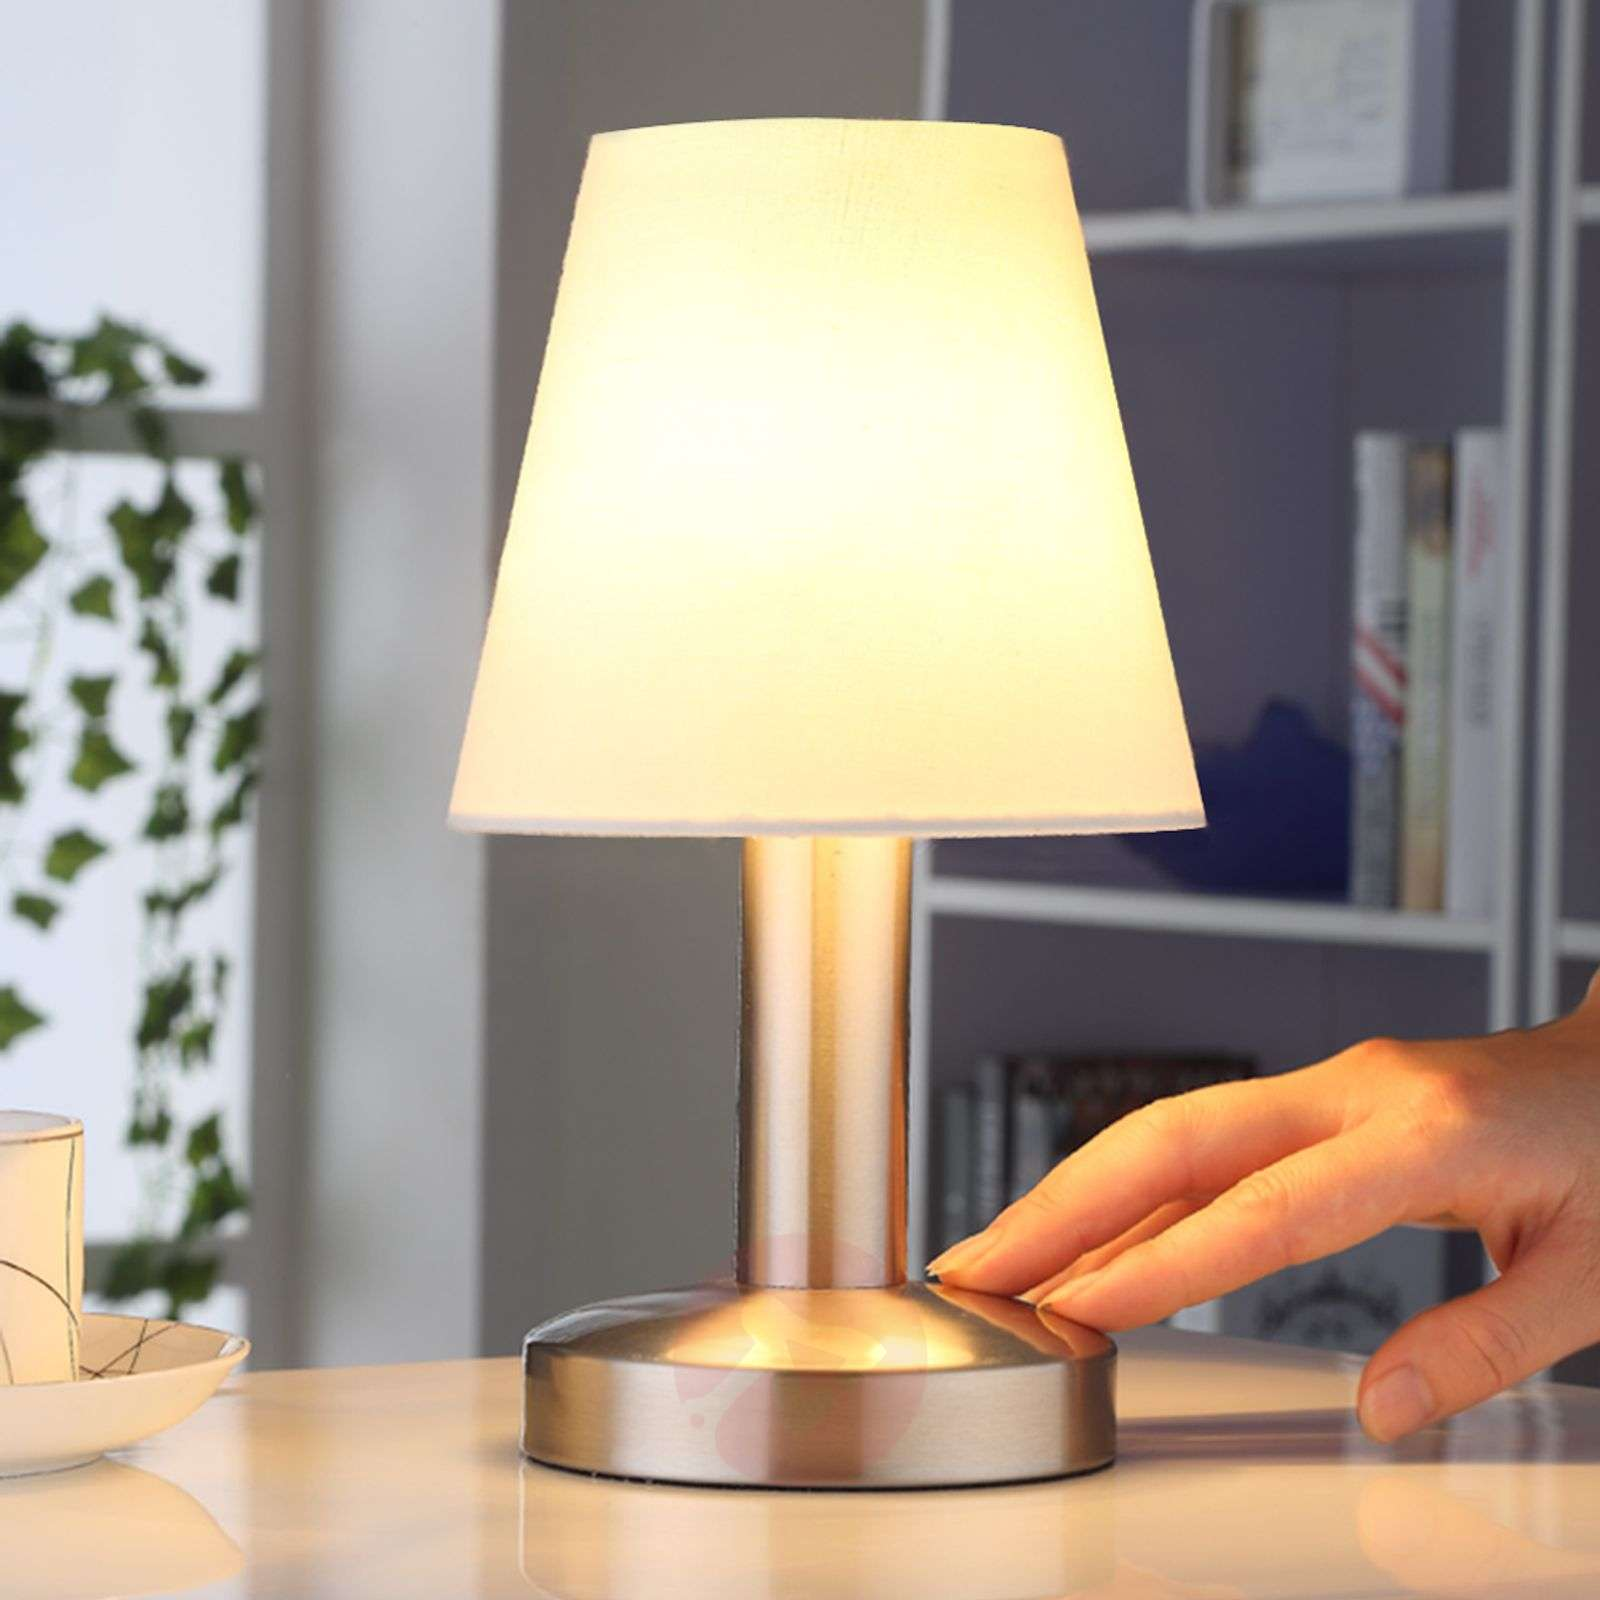 Bedside table lamp Hanno, white fabric lampshade-9620810-01